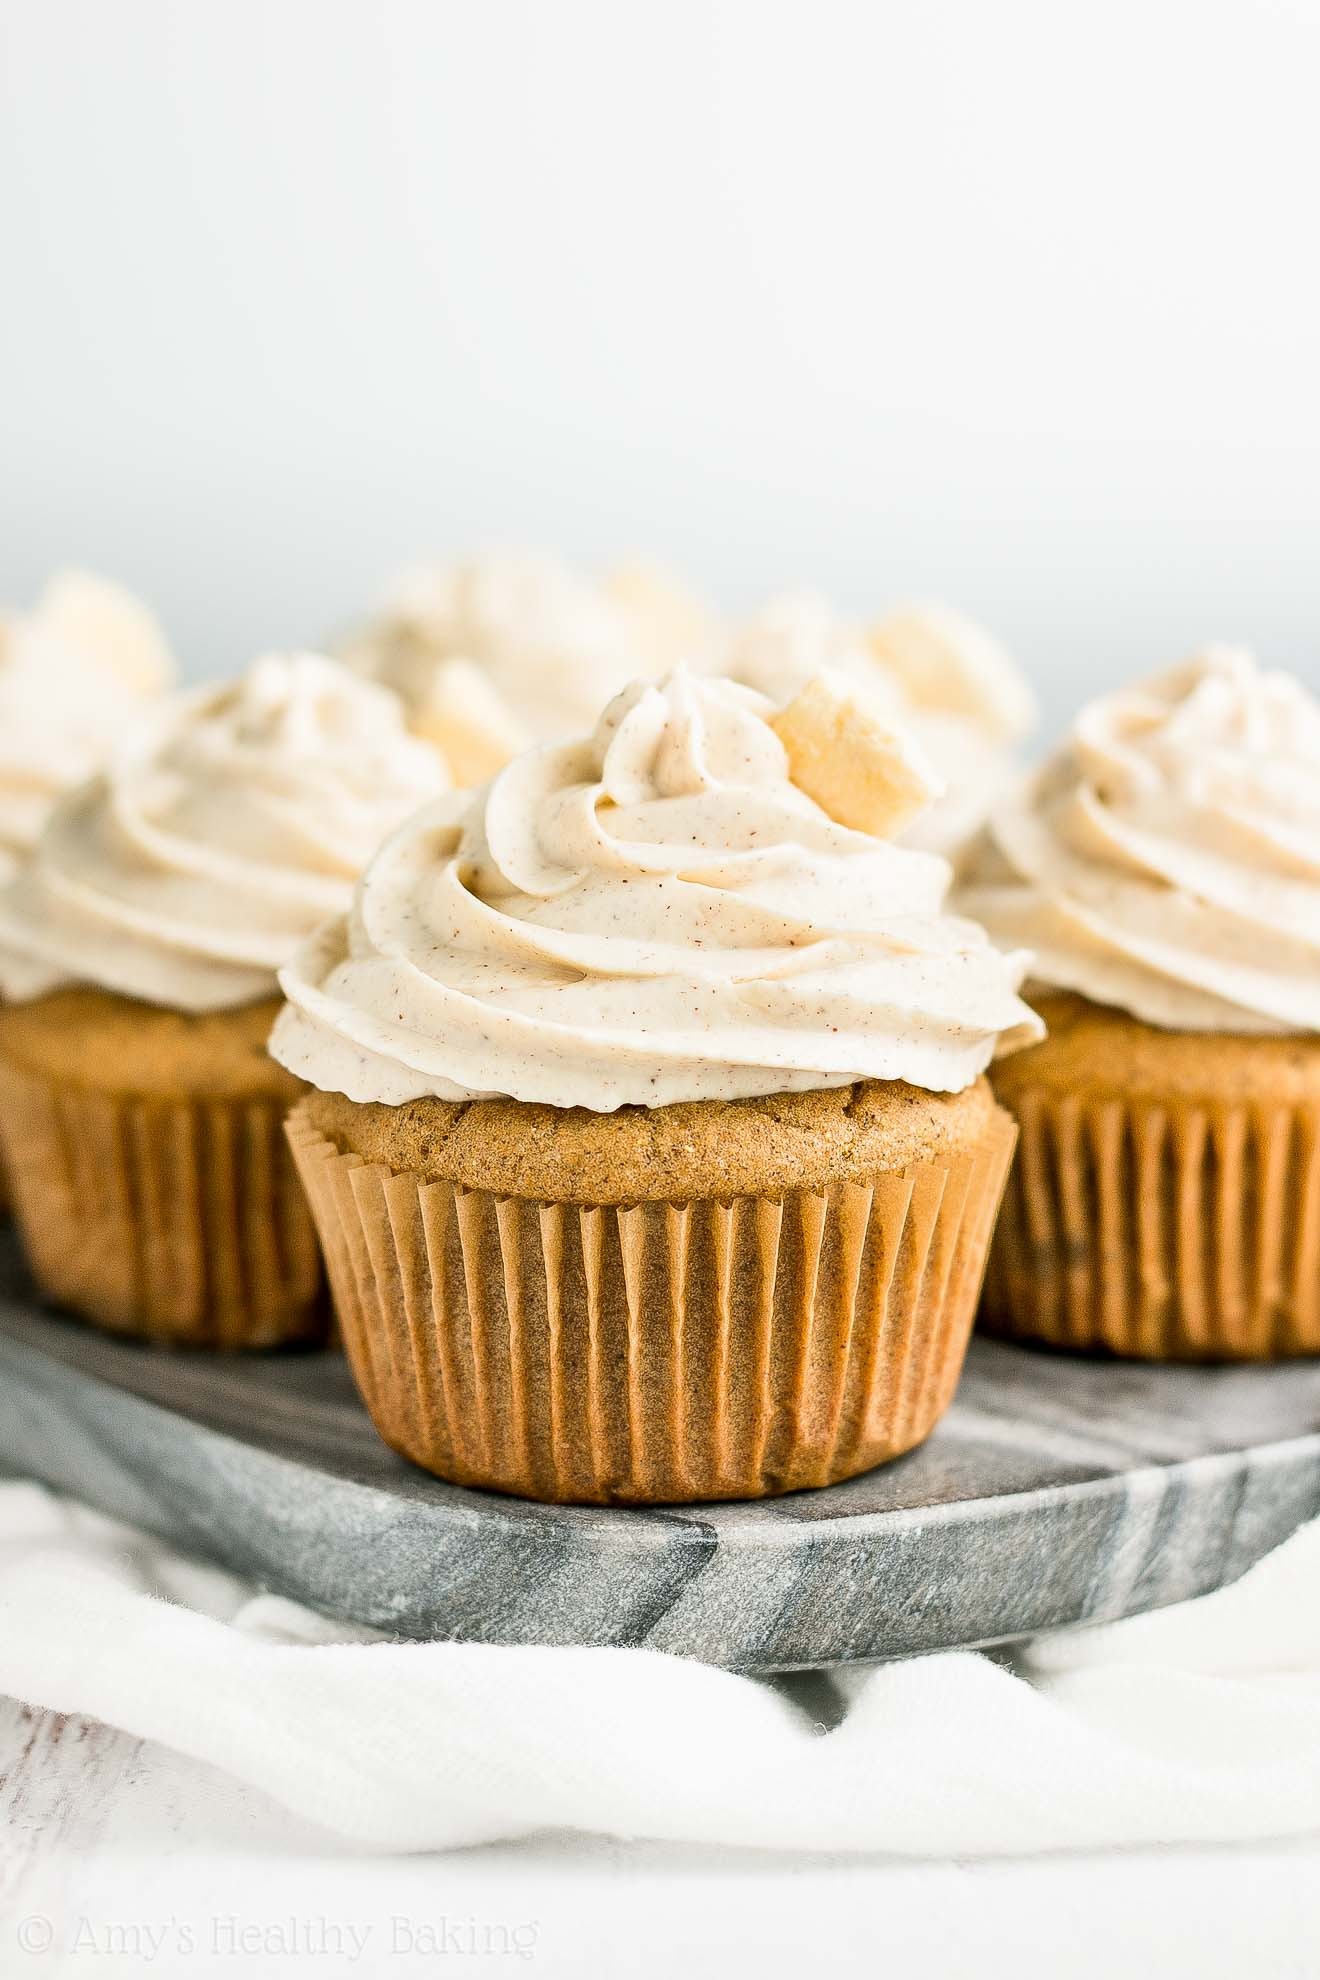 Easy Low-Calorie Healthy Cinnamon Apple Cupcakes with Greek Yogurt Frosting